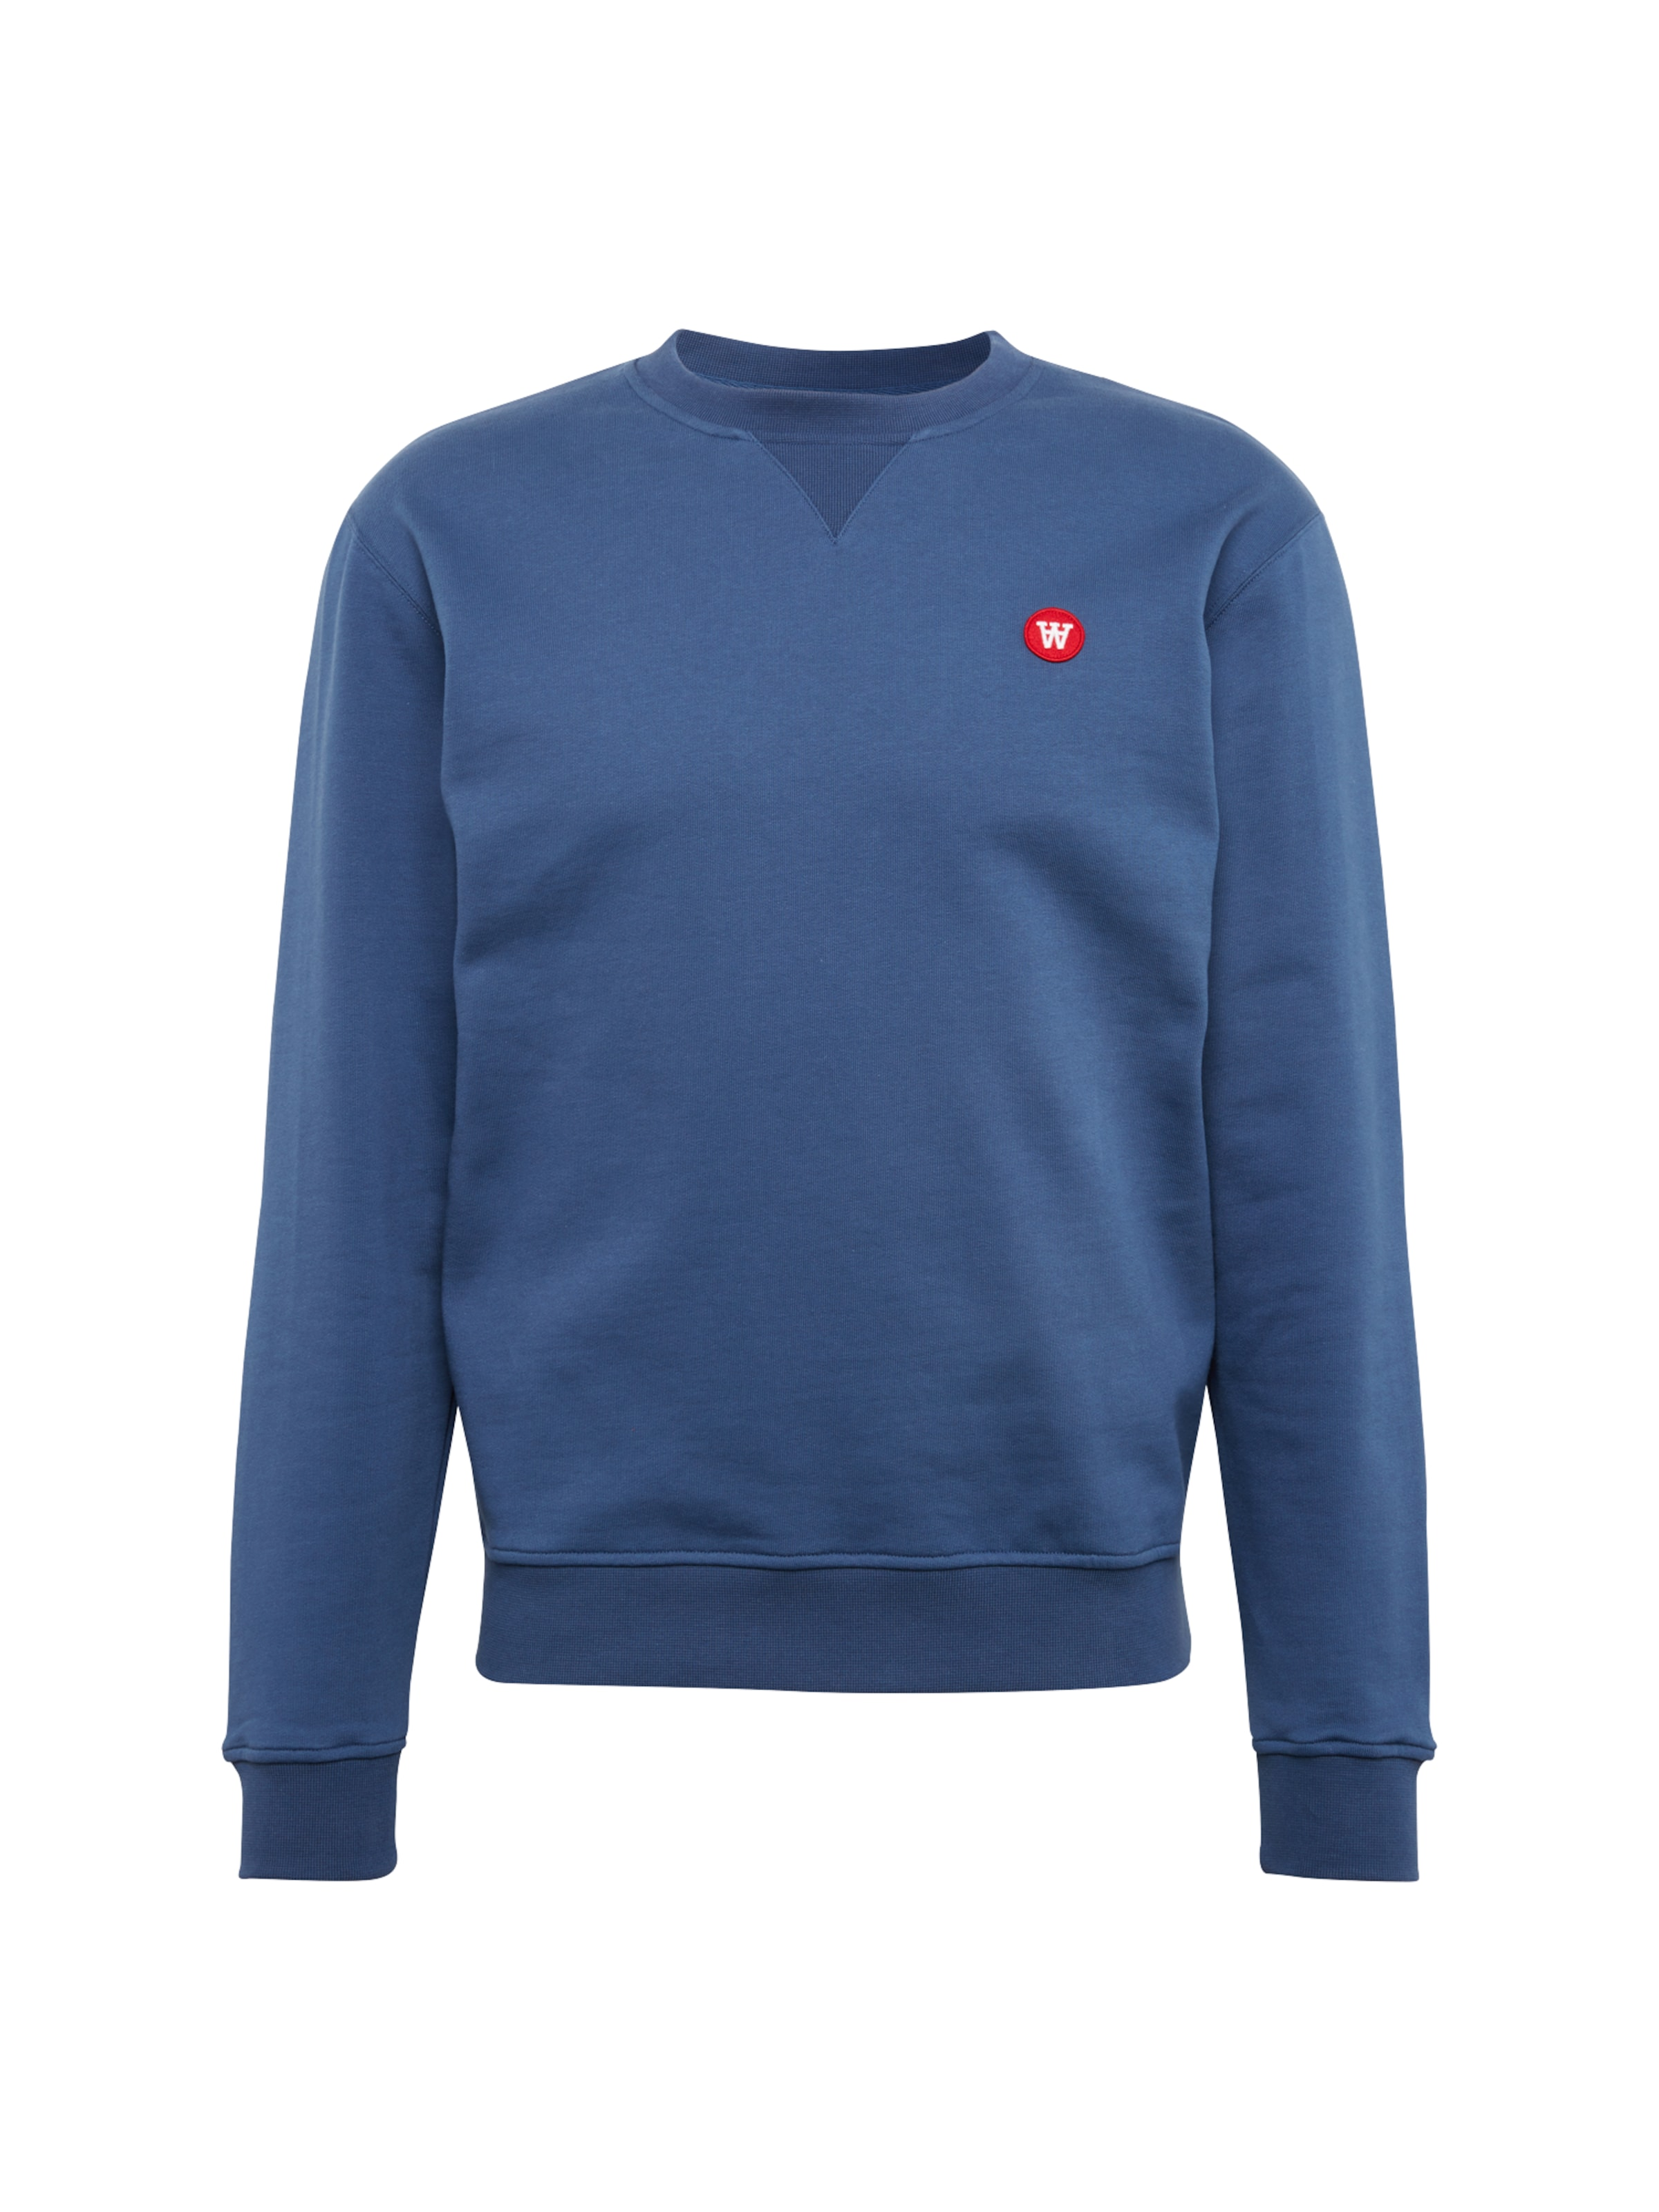 shirt Wood En 'tye' Bleu Sweat vm0wN8n